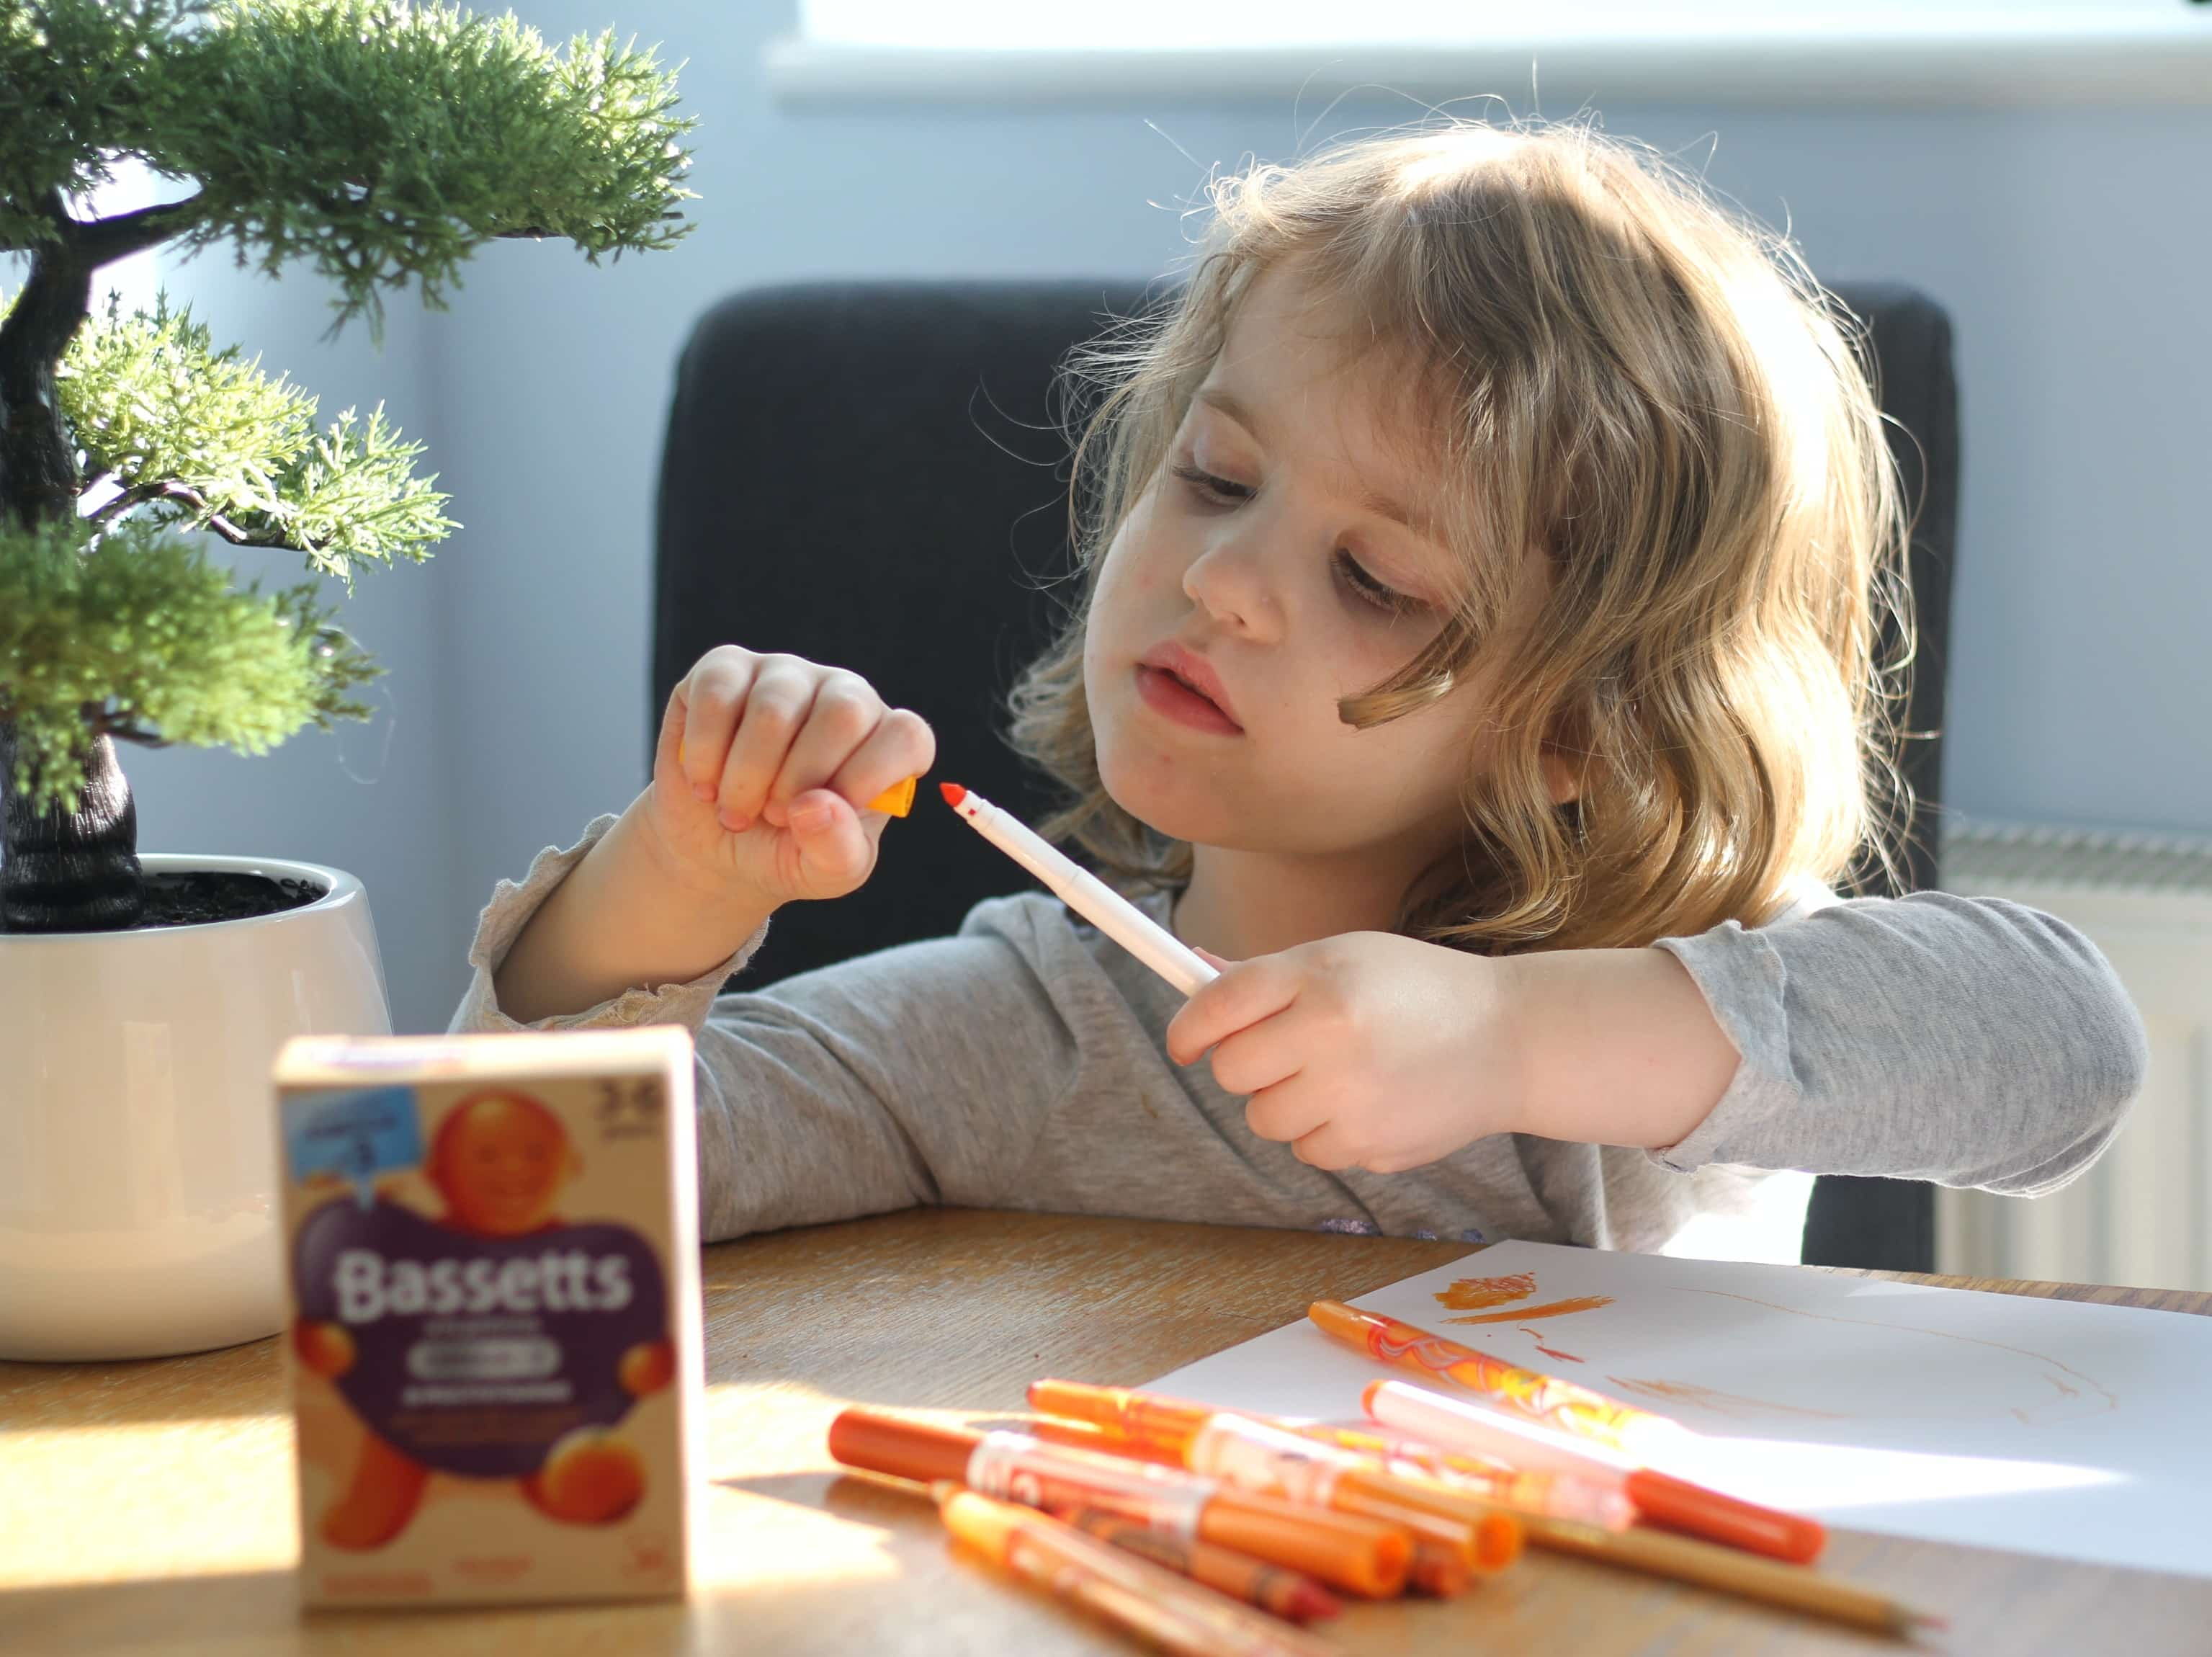 Littlest drawing what Bassetts Omega-3 Orange taste like